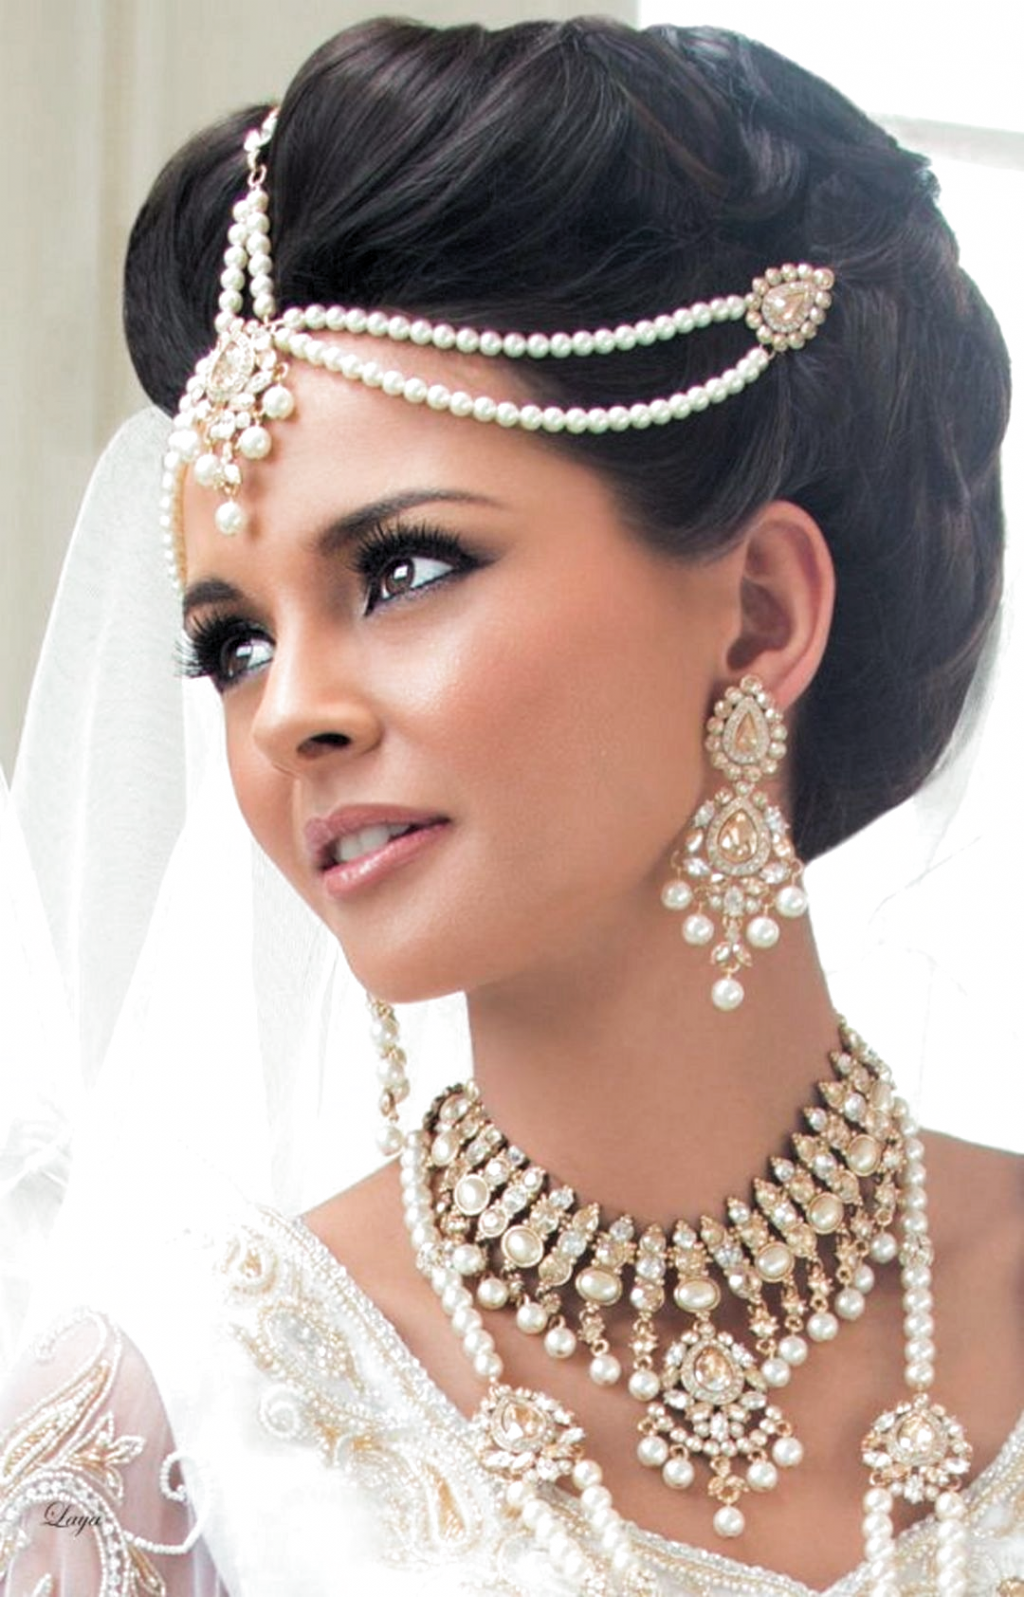 18+ Haute coiffure pour mariage indienne inspiration